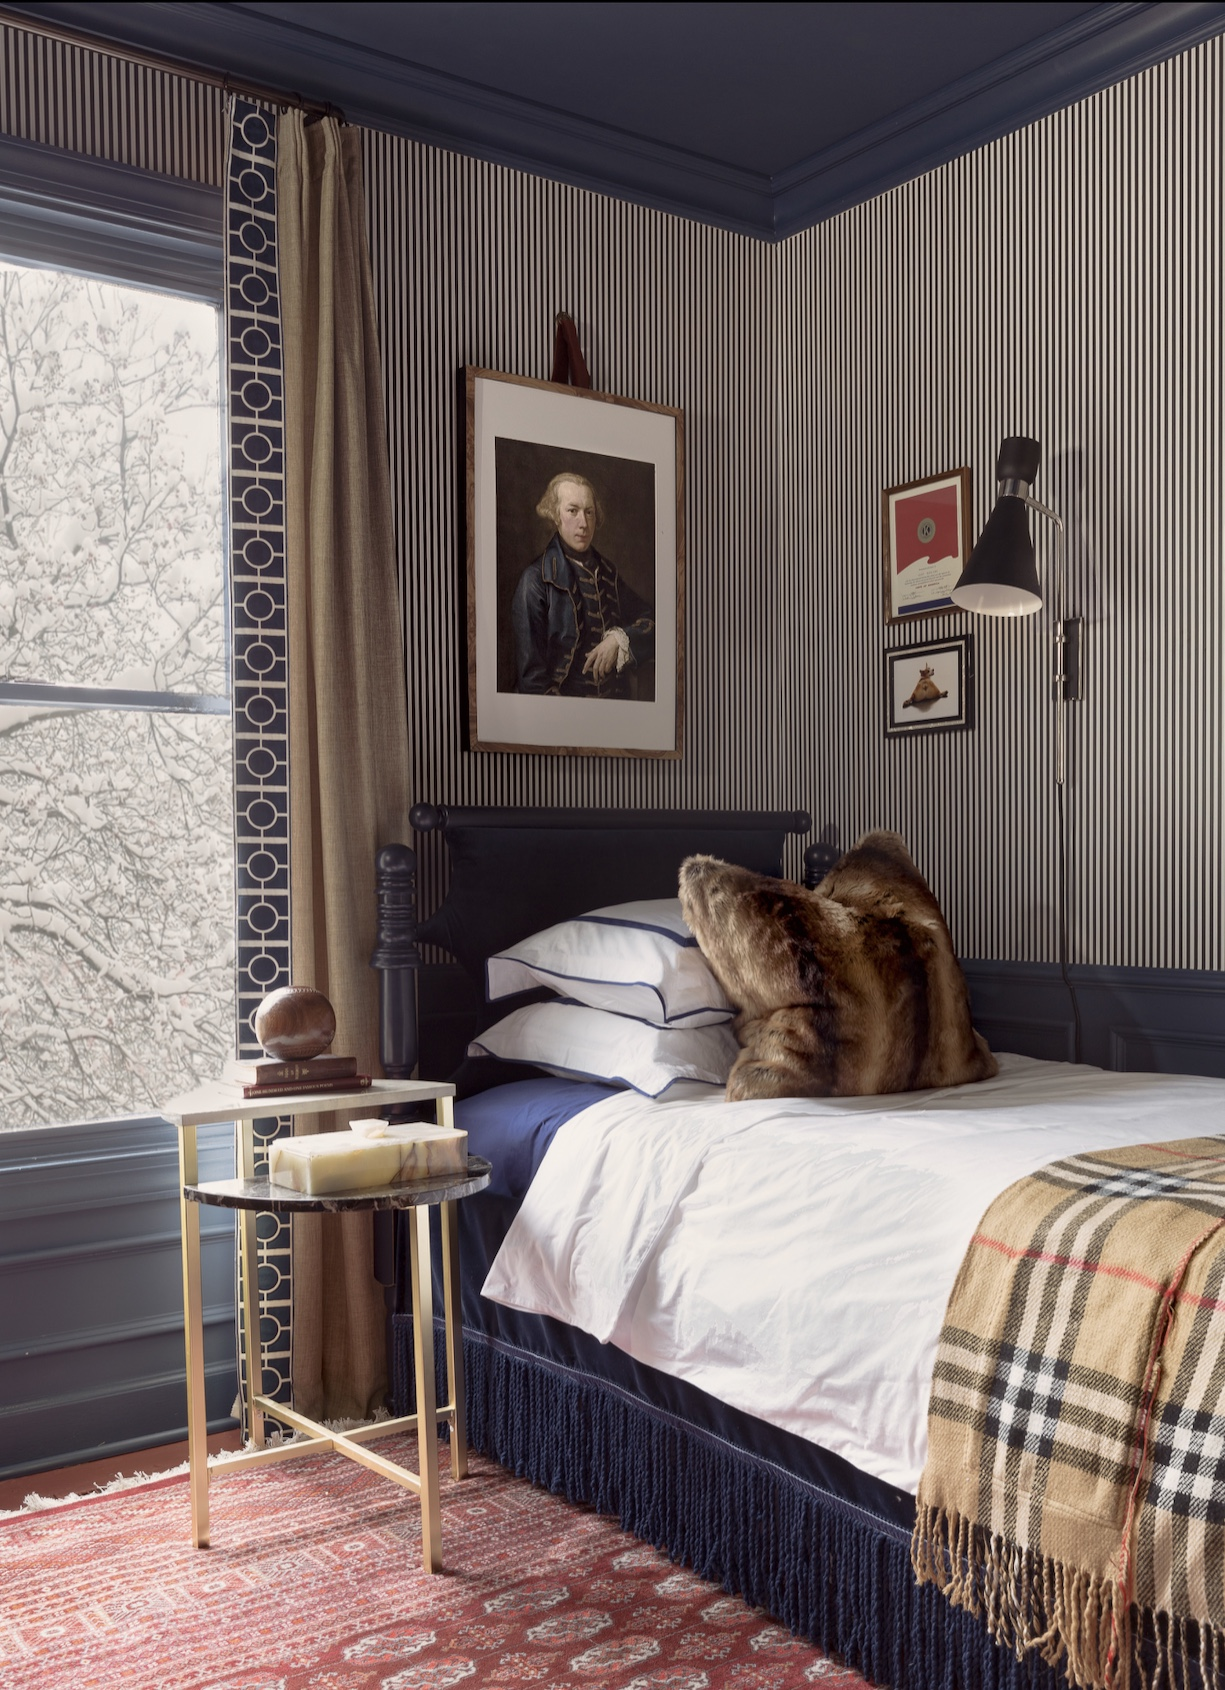 Masculine Traditional Bedroom, reveal, boy's bedroom, boy bedroom, man bedroom, British design, grand millennial, traditional design, Stiffkey blue, Wagner chandelier, modern chandelier, black and white striped wallpaper, Milton and king, candy stripe, gallery wall,